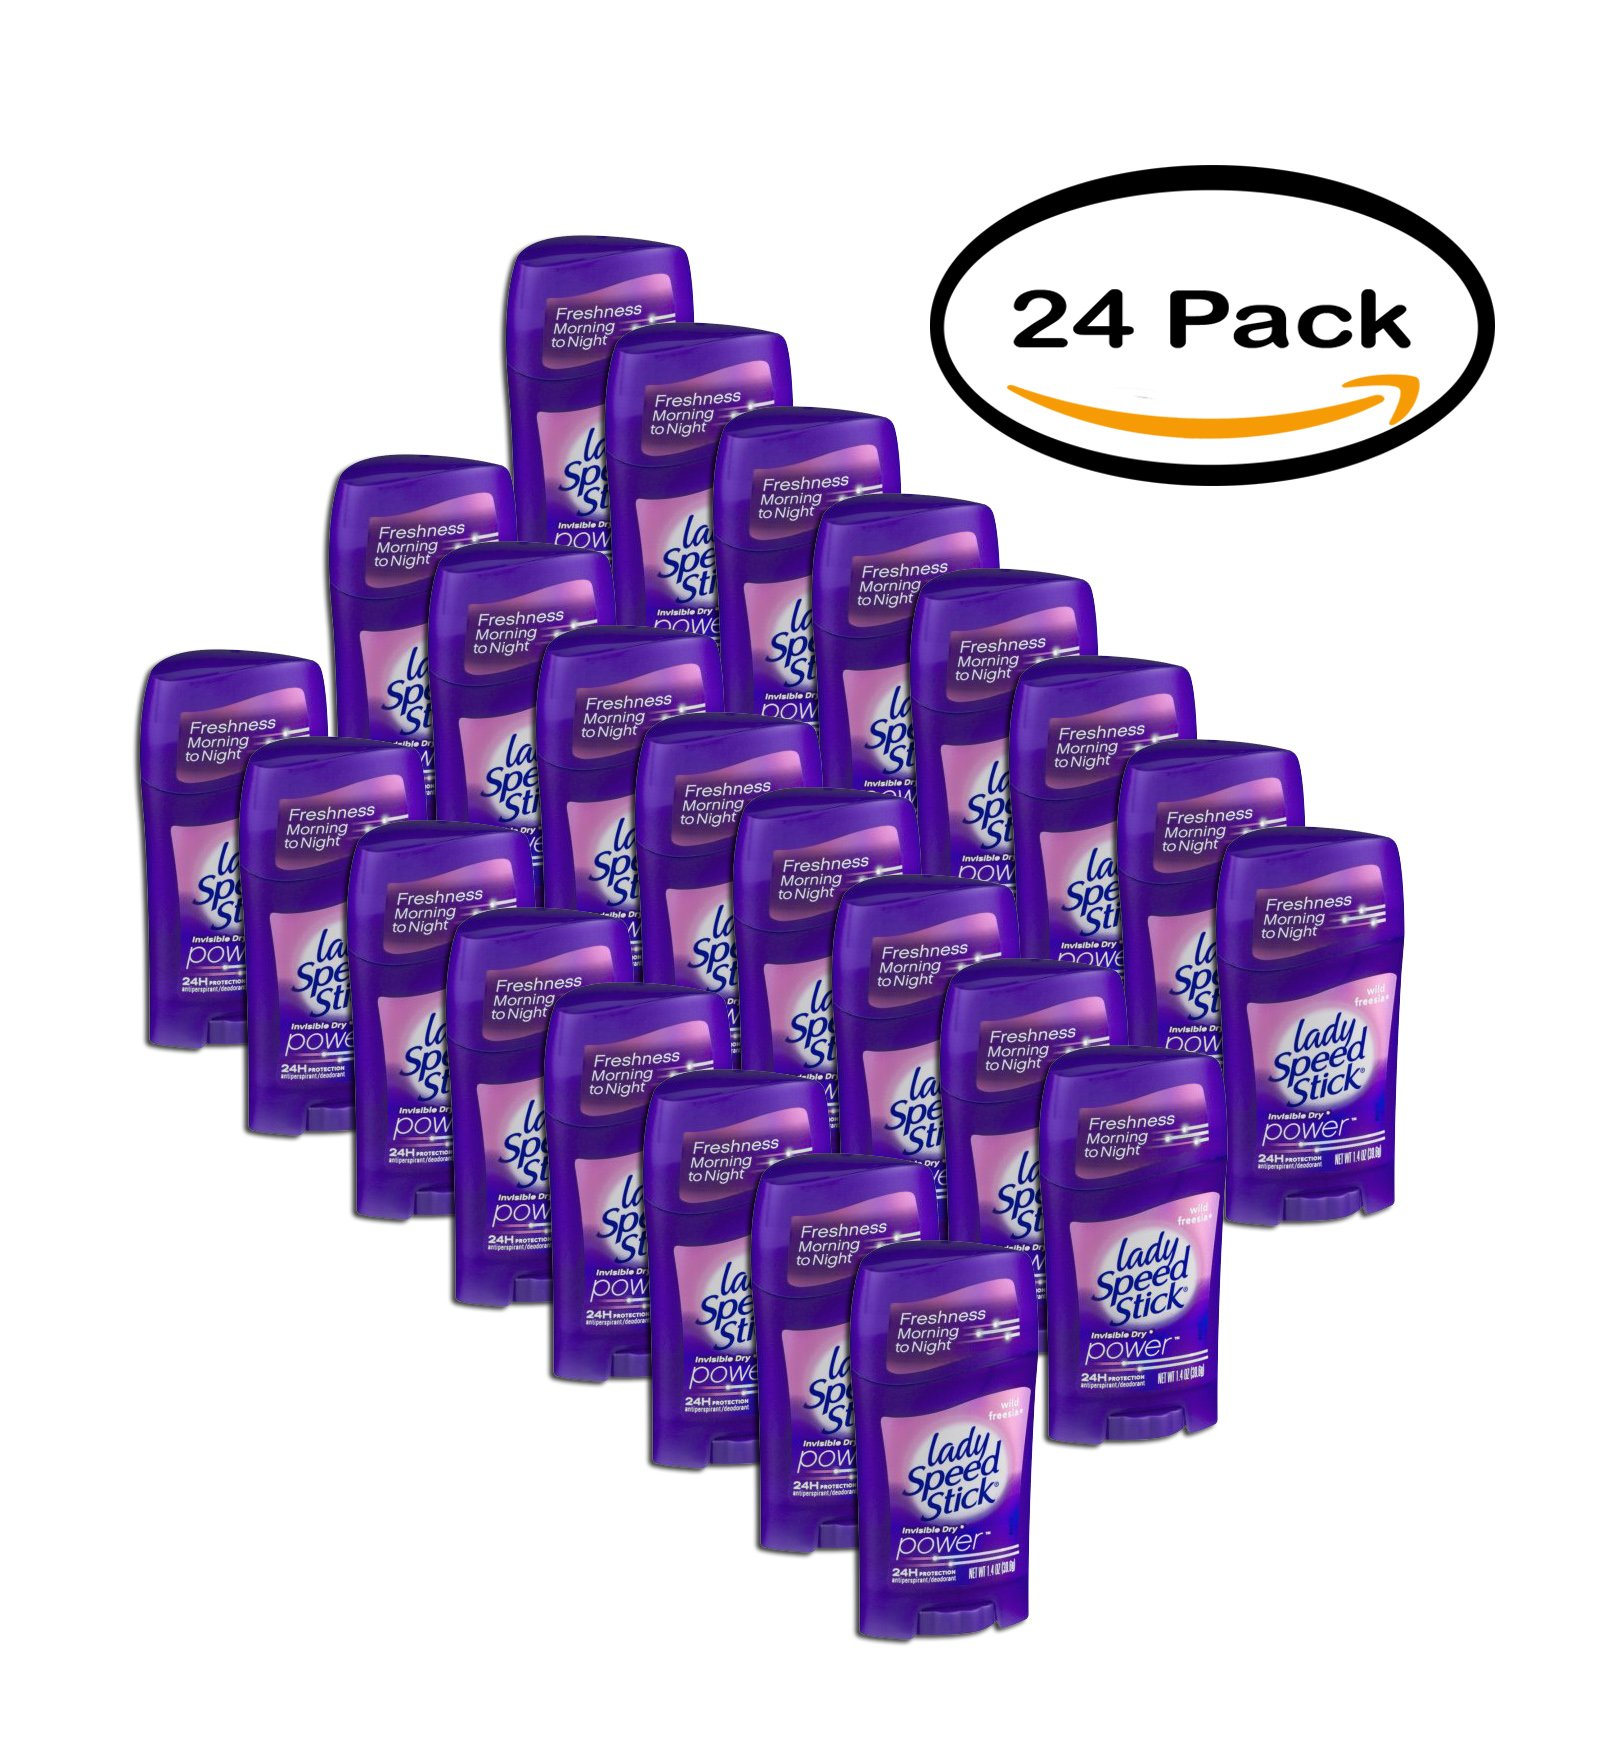 PACK OF 24 - LADY Speed Stick A/P inv.dry WILD FREESIA -1.4oz/12CT